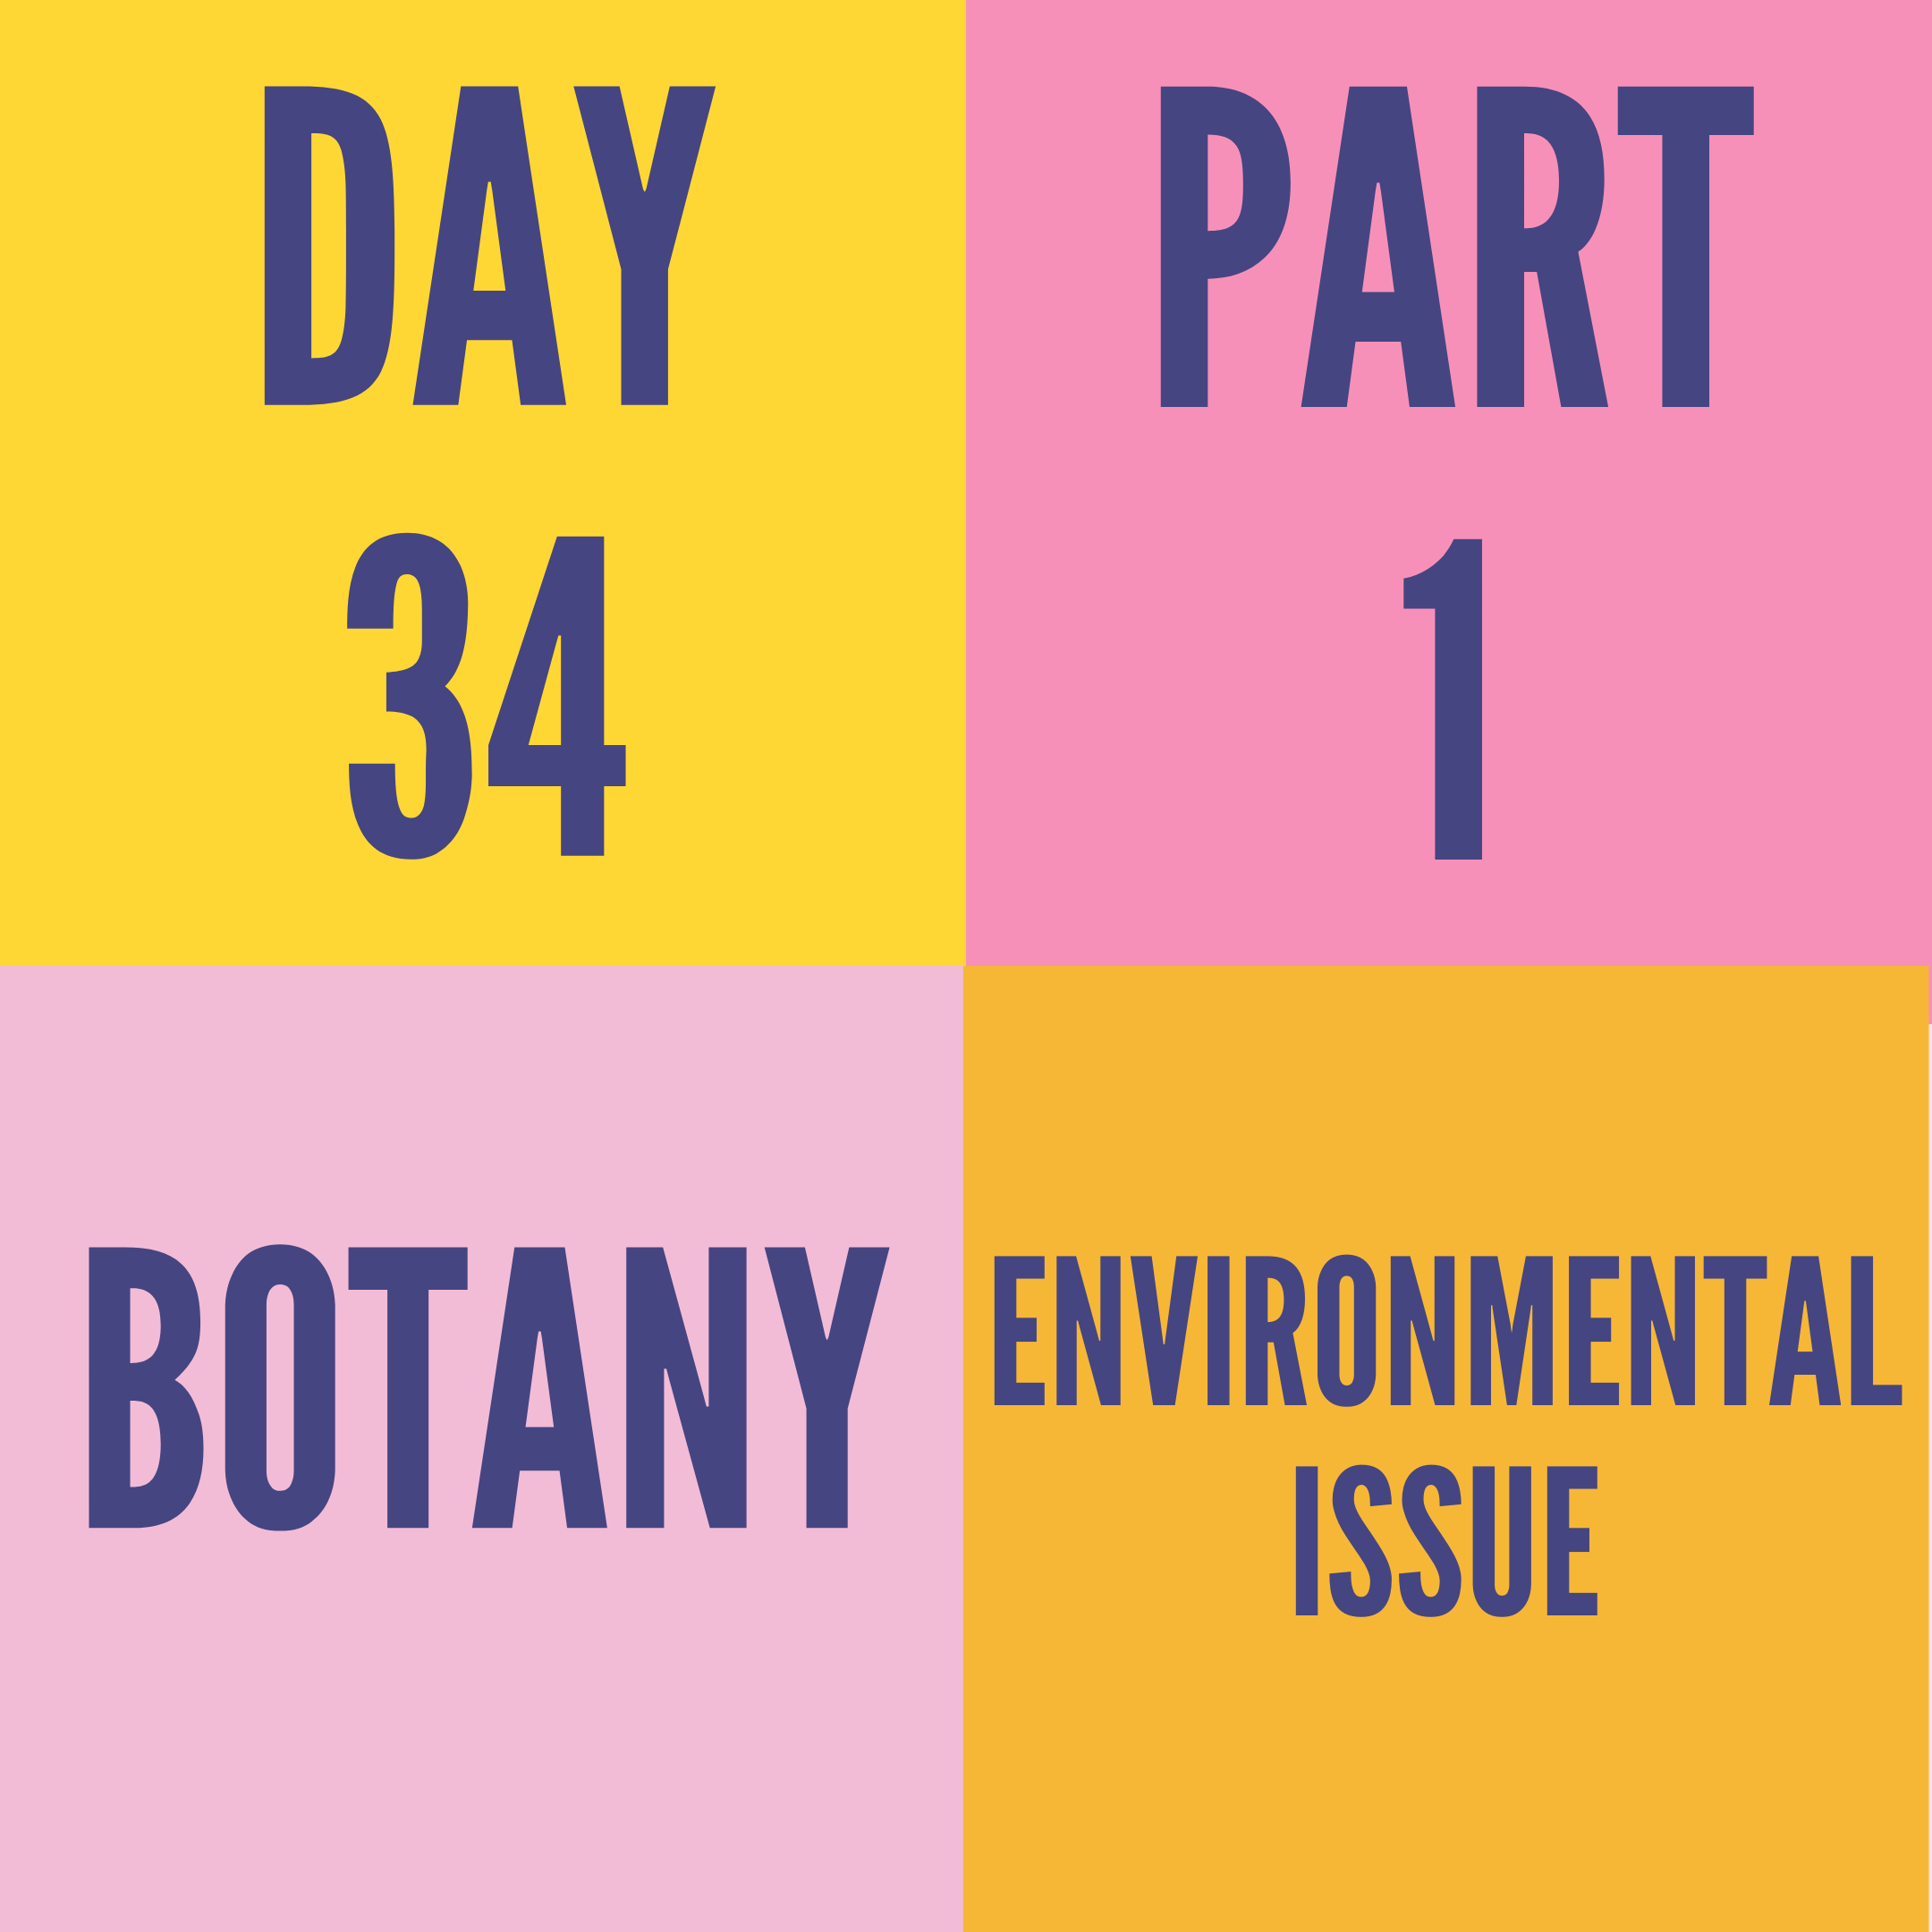 DAY-34 PART-1 ENVIRONMENTAL ISSUE